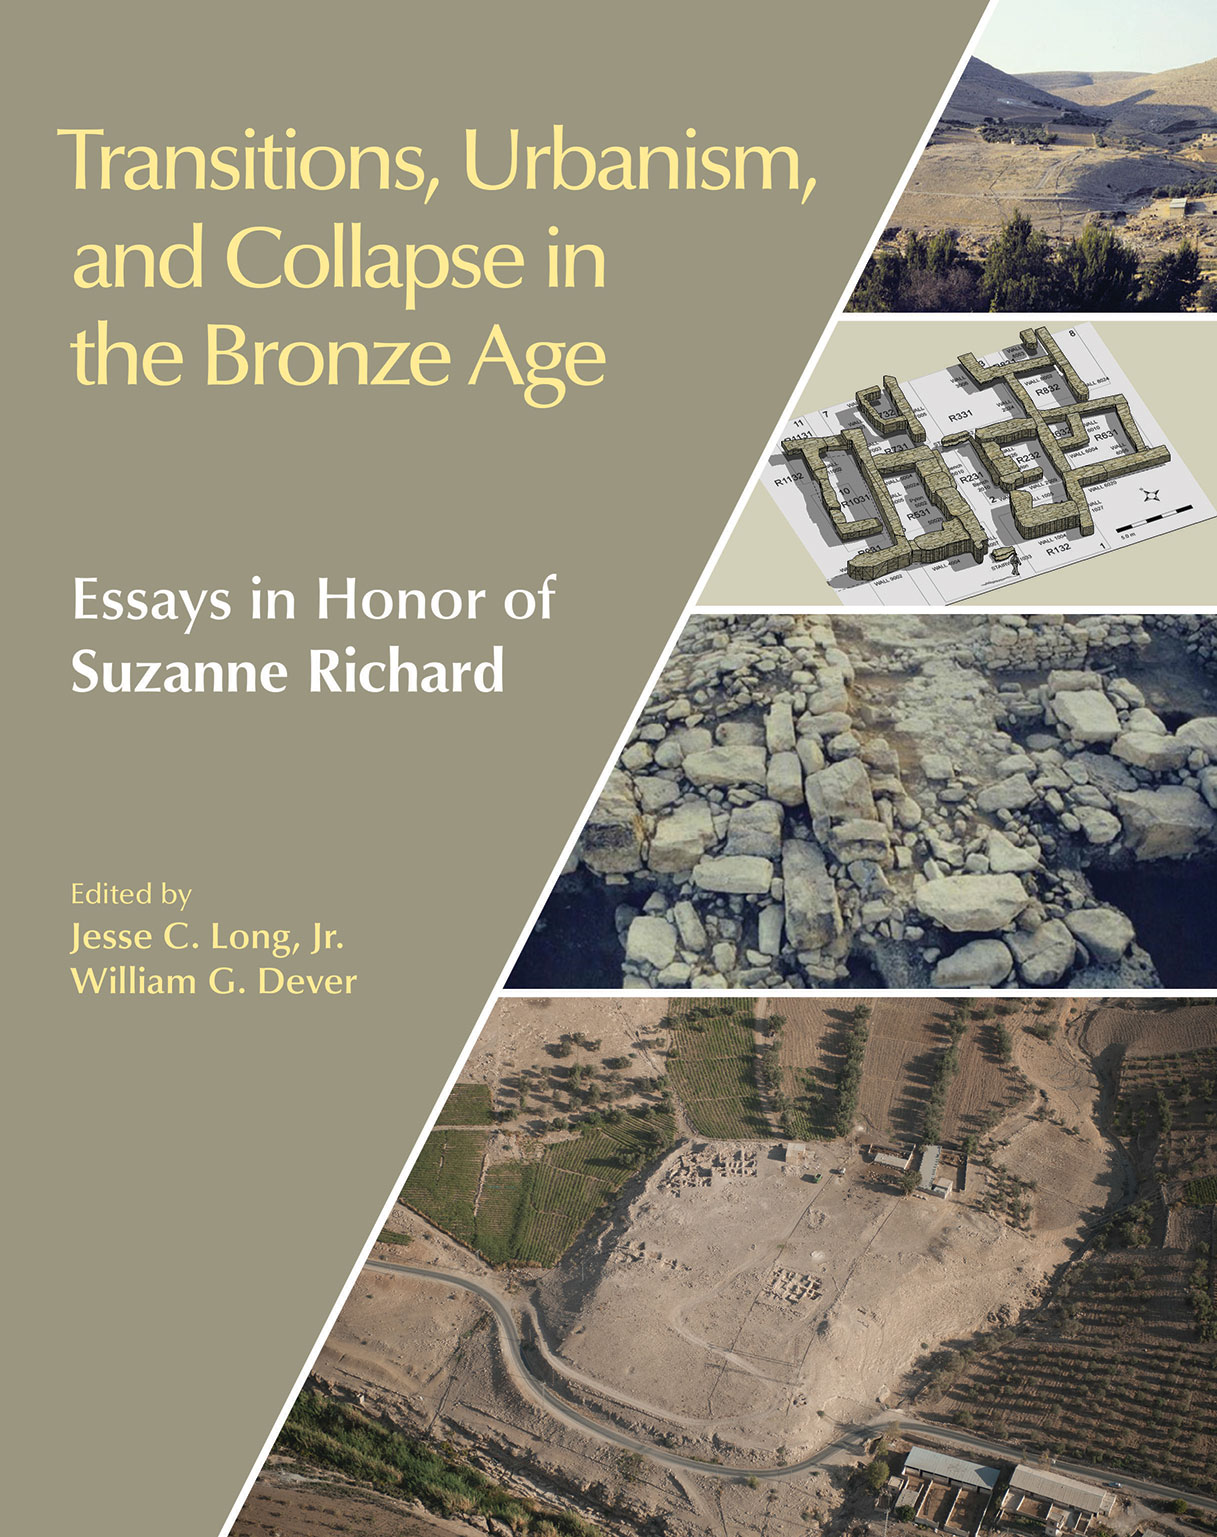 Transitions, Urbanism, and Collapse in the Bronze Age - Essays in Honor of Suzanne Richard - Jesse C. Long, Jr.